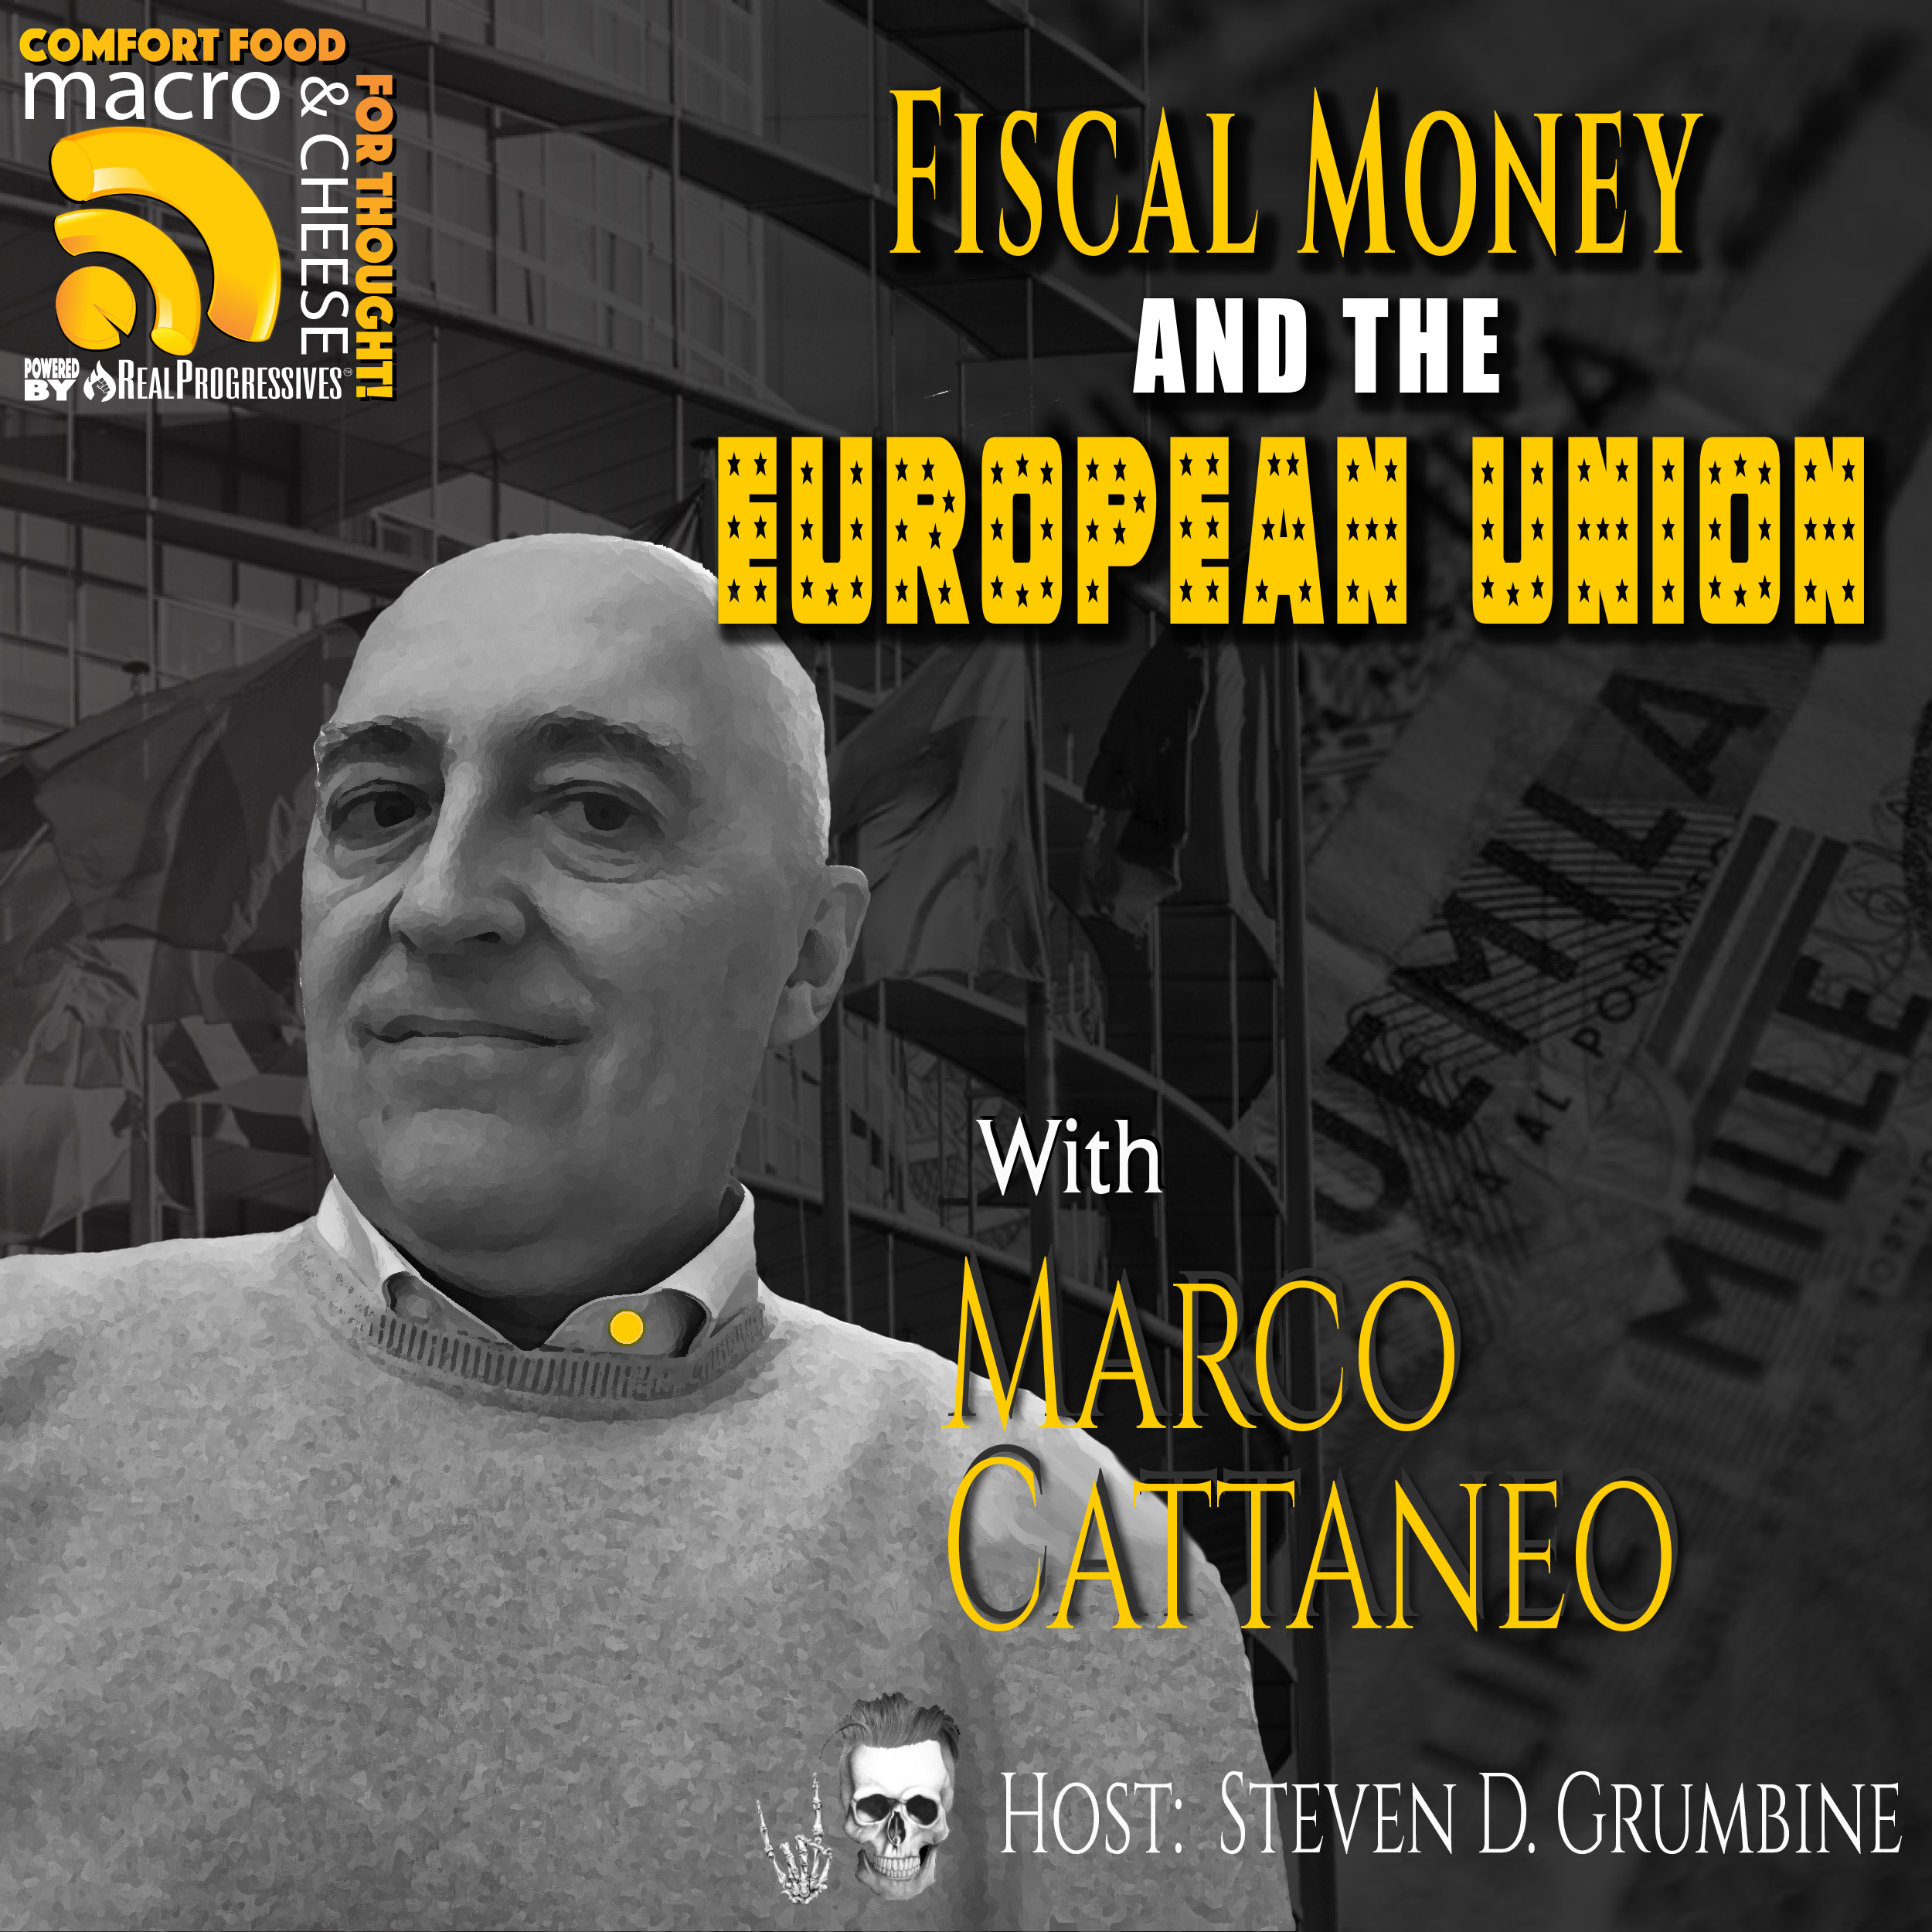 Fiscal Money and the European Union with Marco Cattaneo